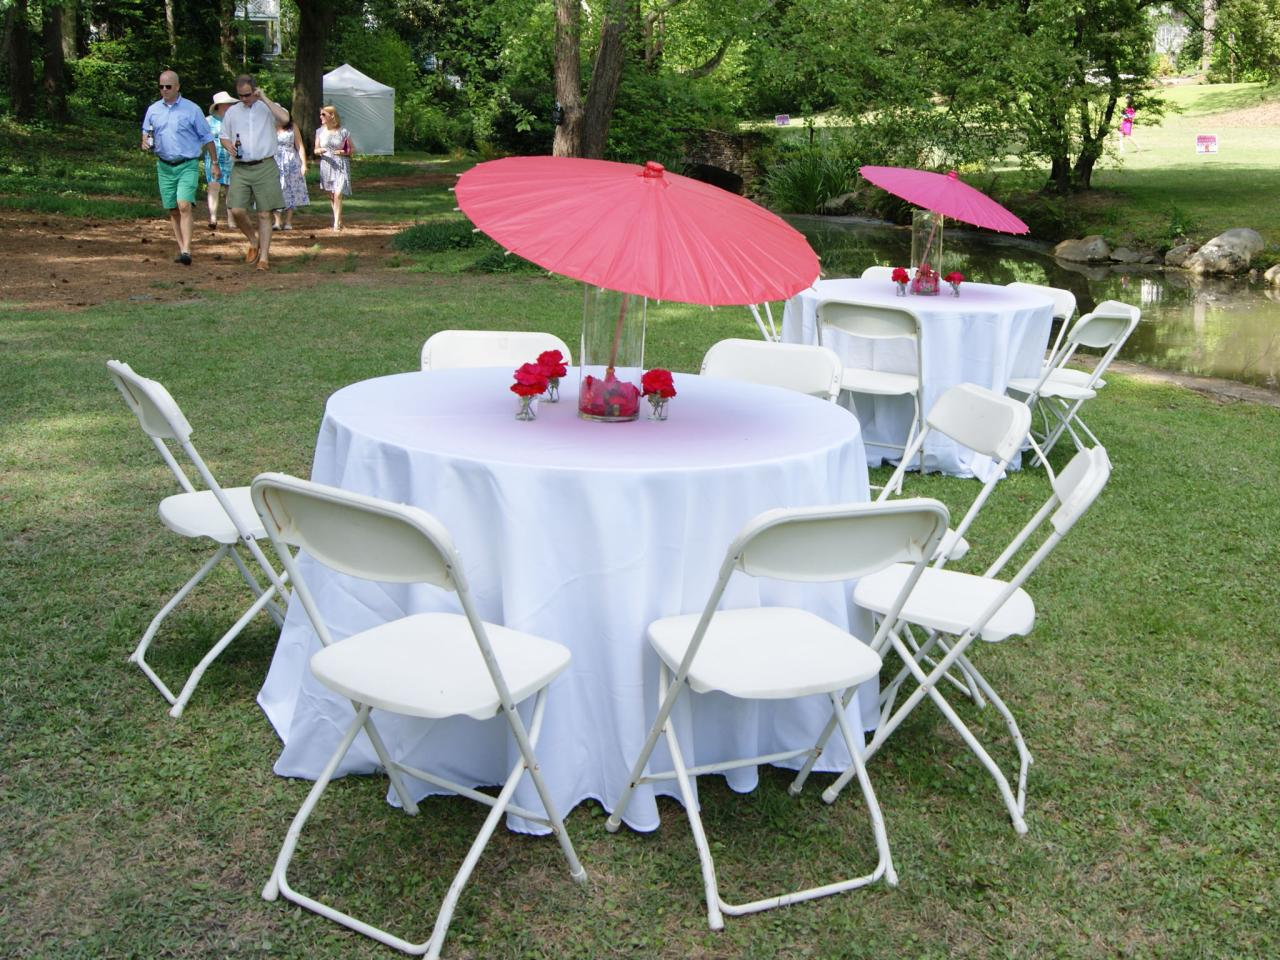 Imaginative Garden Party Themes | DIY Network Blog: Made + Remade | DIY